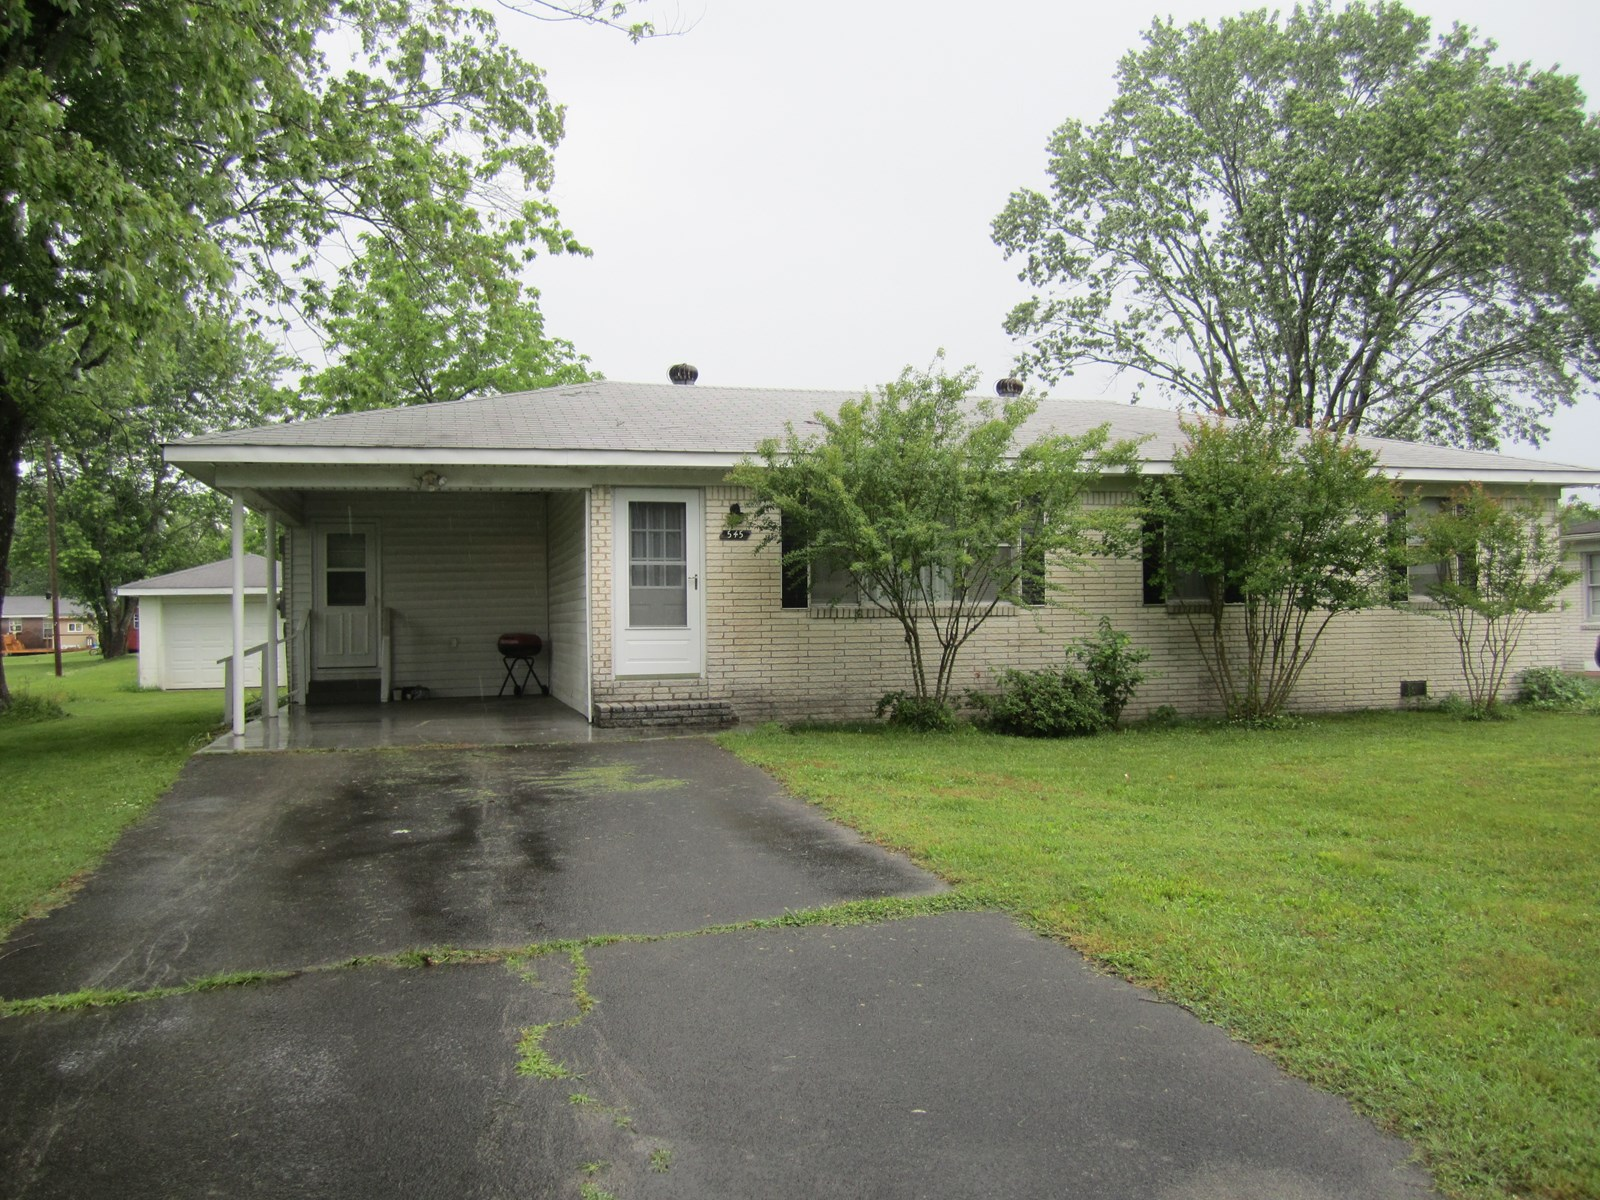 All Brick Ranch Home for Sale in Town in Hohenwald Tennessee